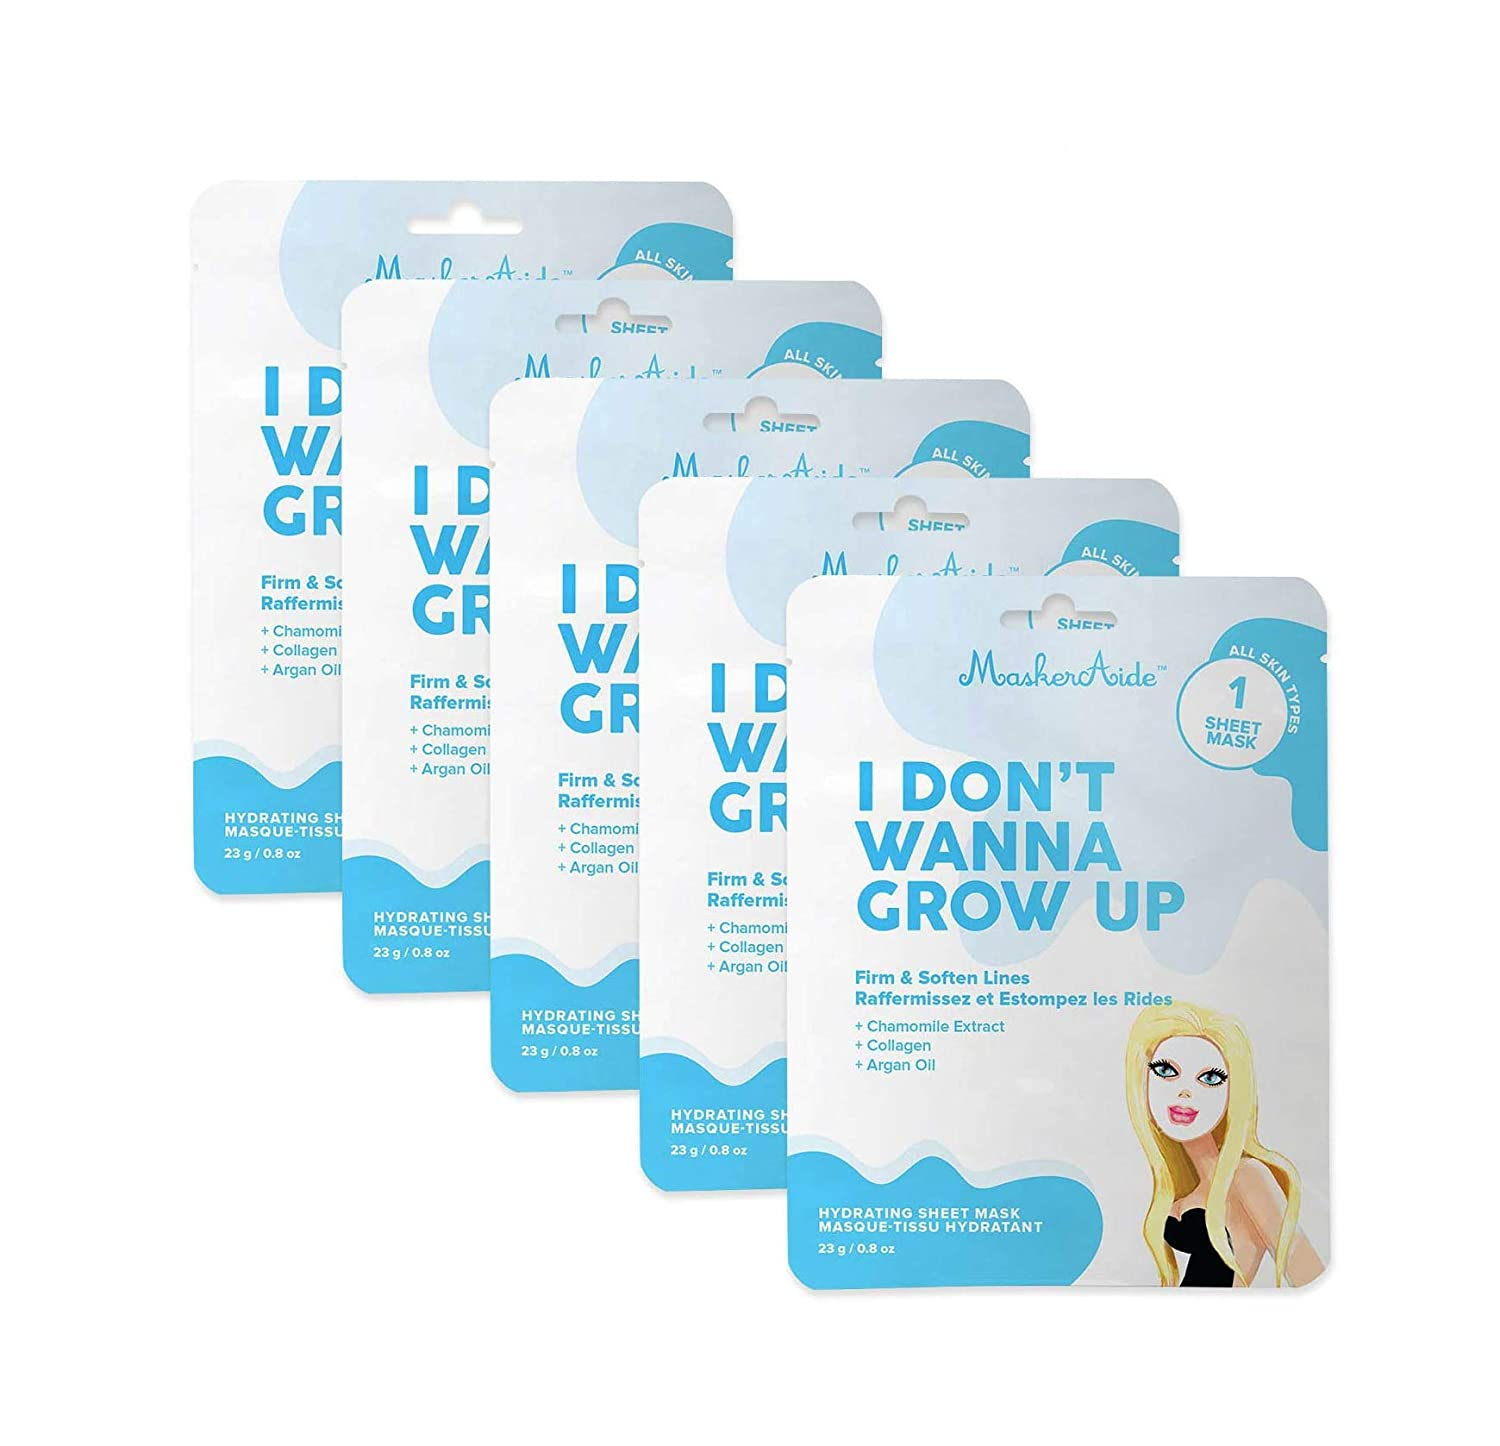 MaskerAide I Don't Wanna Grow Up Firming Face Mask with Hydrolyzed Collagen, Hydrolyzed Elastin, Natural Ylang-Ylang Oil & Vitamin E, Firm & Soften Lines, Cruelty Free, Korean Skincare, 5 Pack